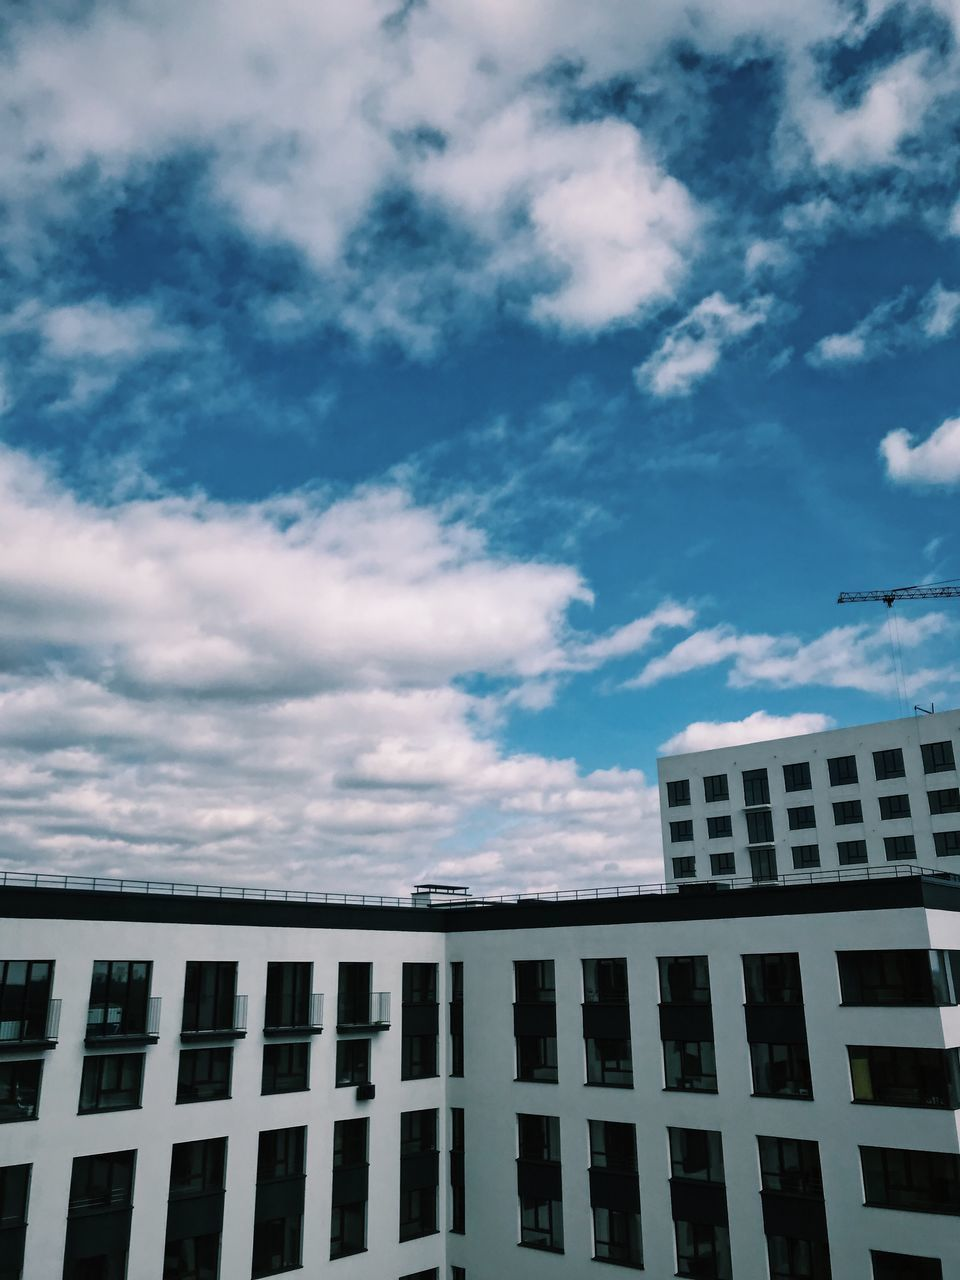 building exterior, built structure, cloud - sky, architecture, sky, building, city, low angle view, nature, window, no people, day, outdoors, residential district, office, office building exterior, modern, city life, blue, repetition, skyscraper, apartment